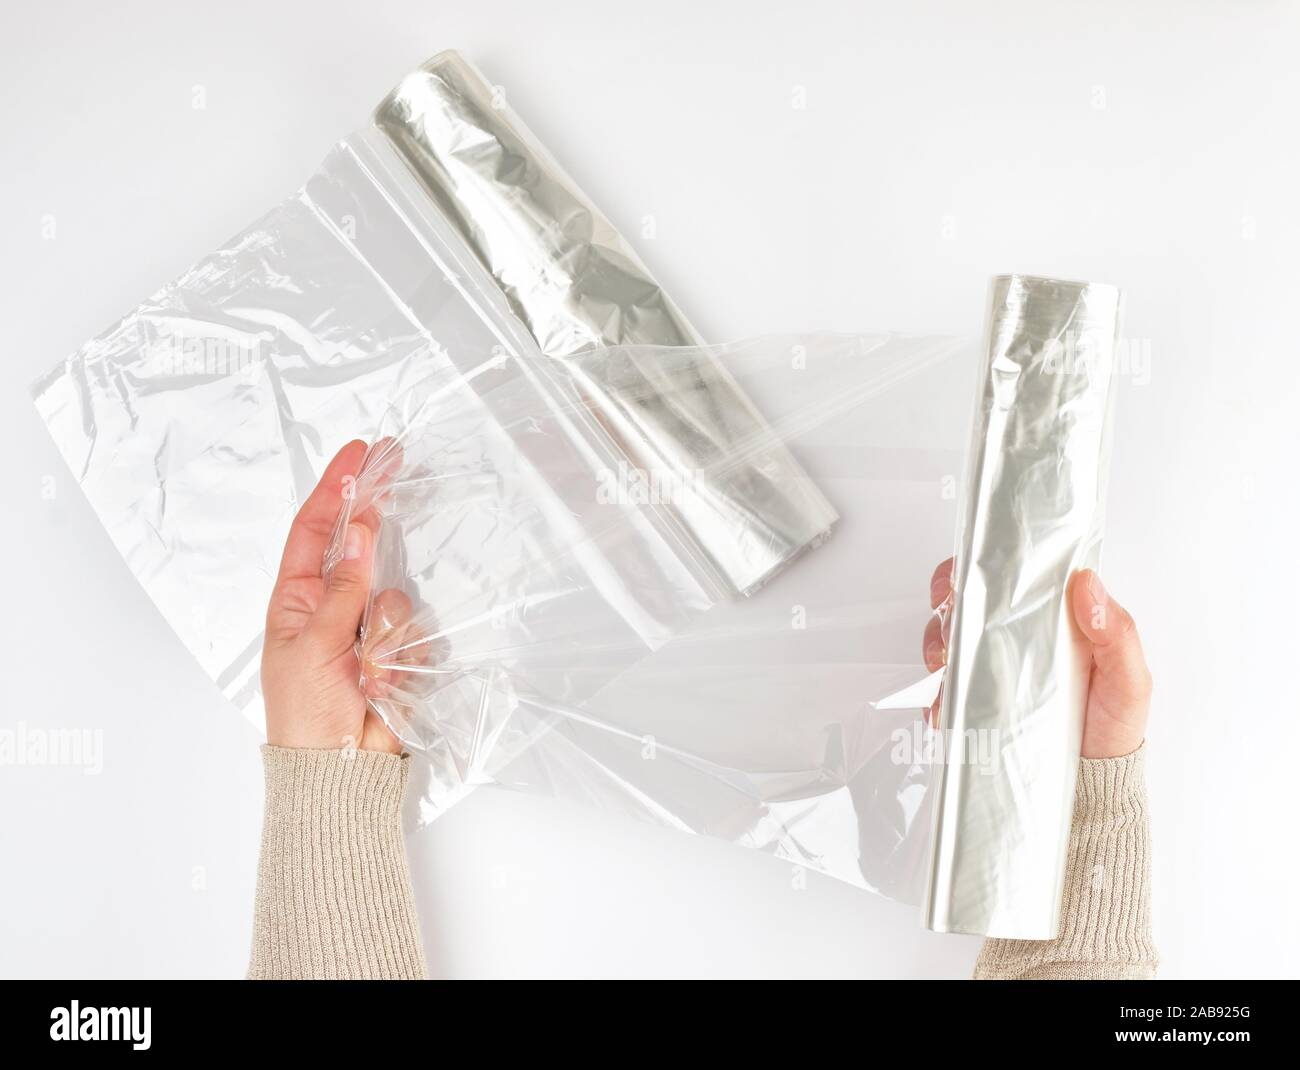 Plastic food wrap for baking products in the oven in women's hand, view from the top, white background. Stock Photo